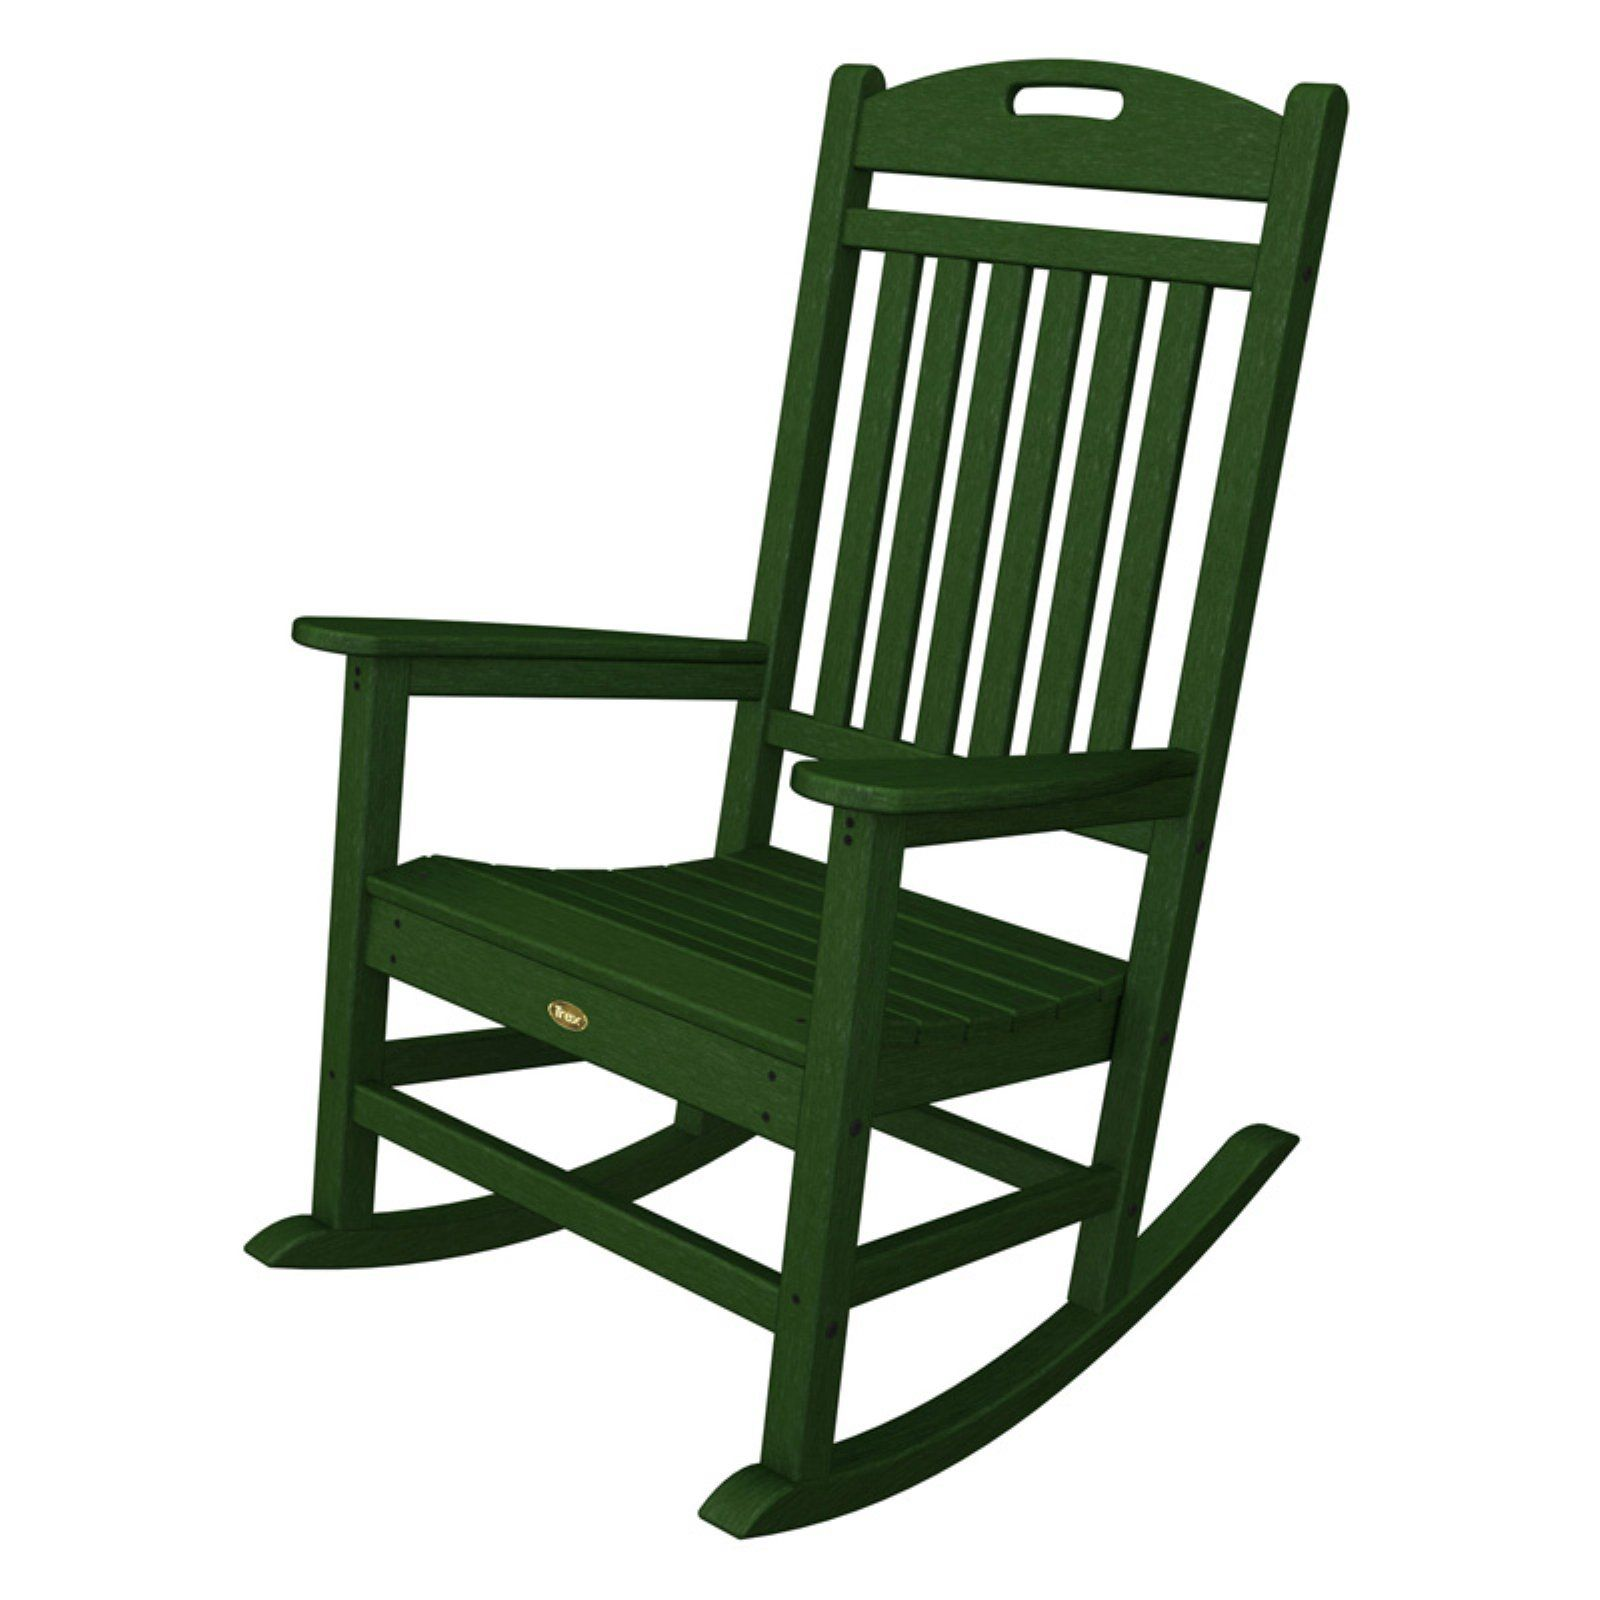 Terrific Trex Outdoor Furniture Recycled Plastic Yacht Club Rocking Pdpeps Interior Chair Design Pdpepsorg